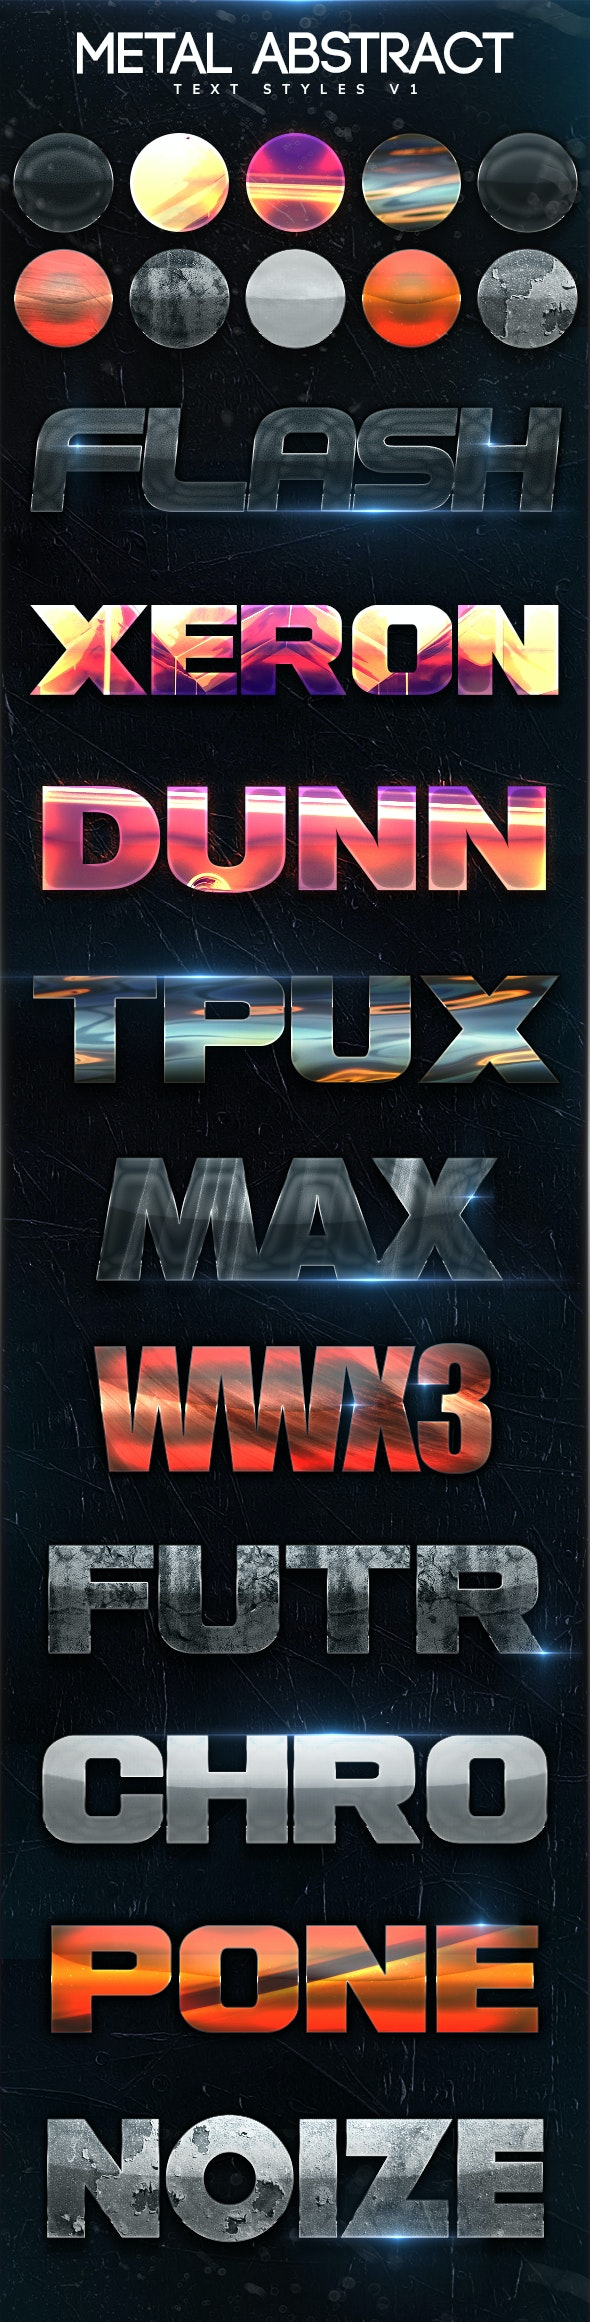 Metal Abstract Text Styles V1 - Text Effects Styles